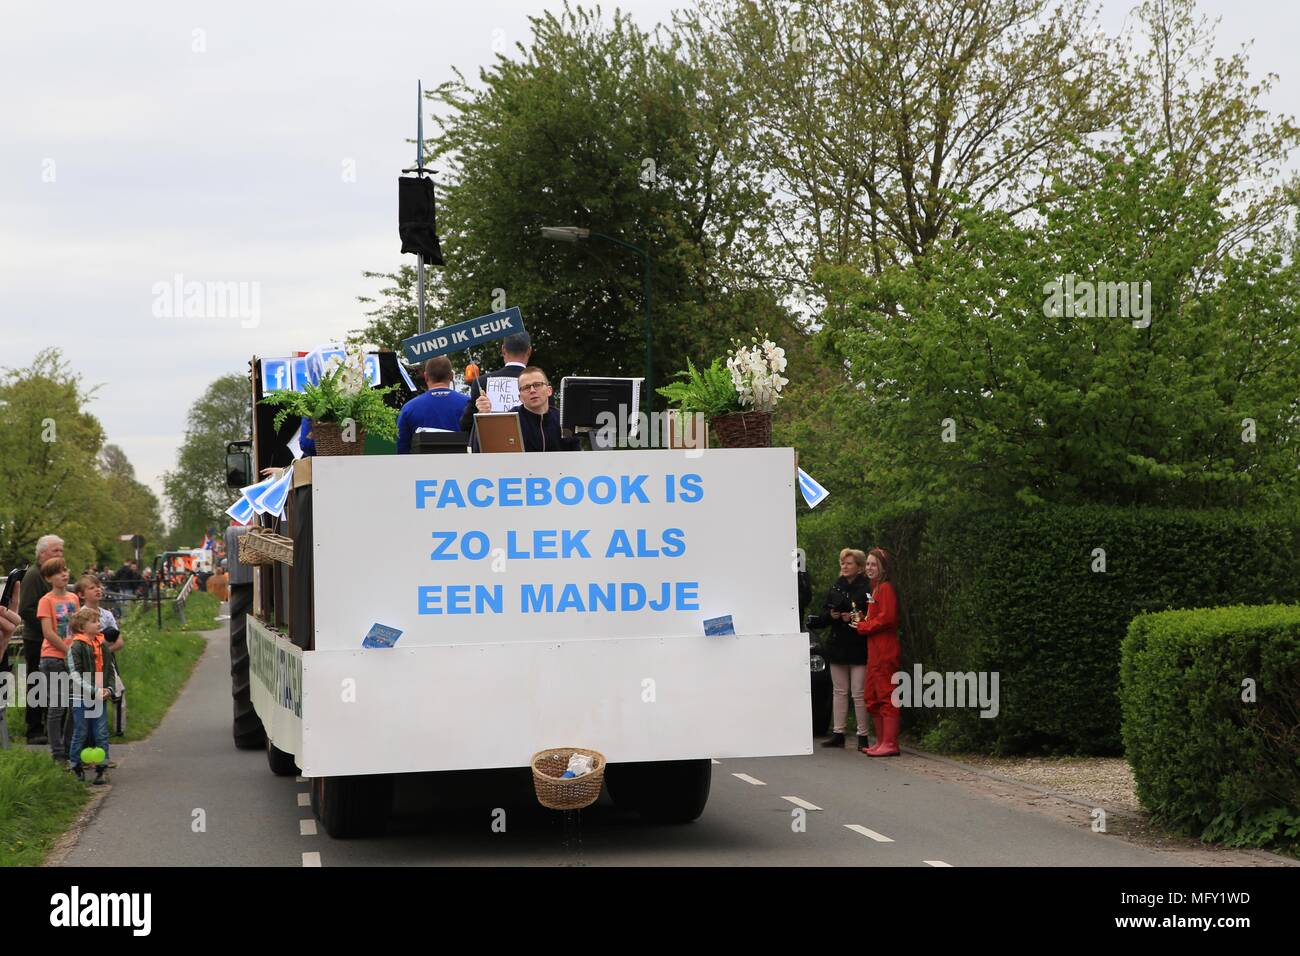 Tienhoven, Netherlands. 27th Apr, 2018. Kingsday Netherlands Tienhoven 27-04-2018 procession Credit: Catchlight Visual Services/Alamy Live News - Stock Image